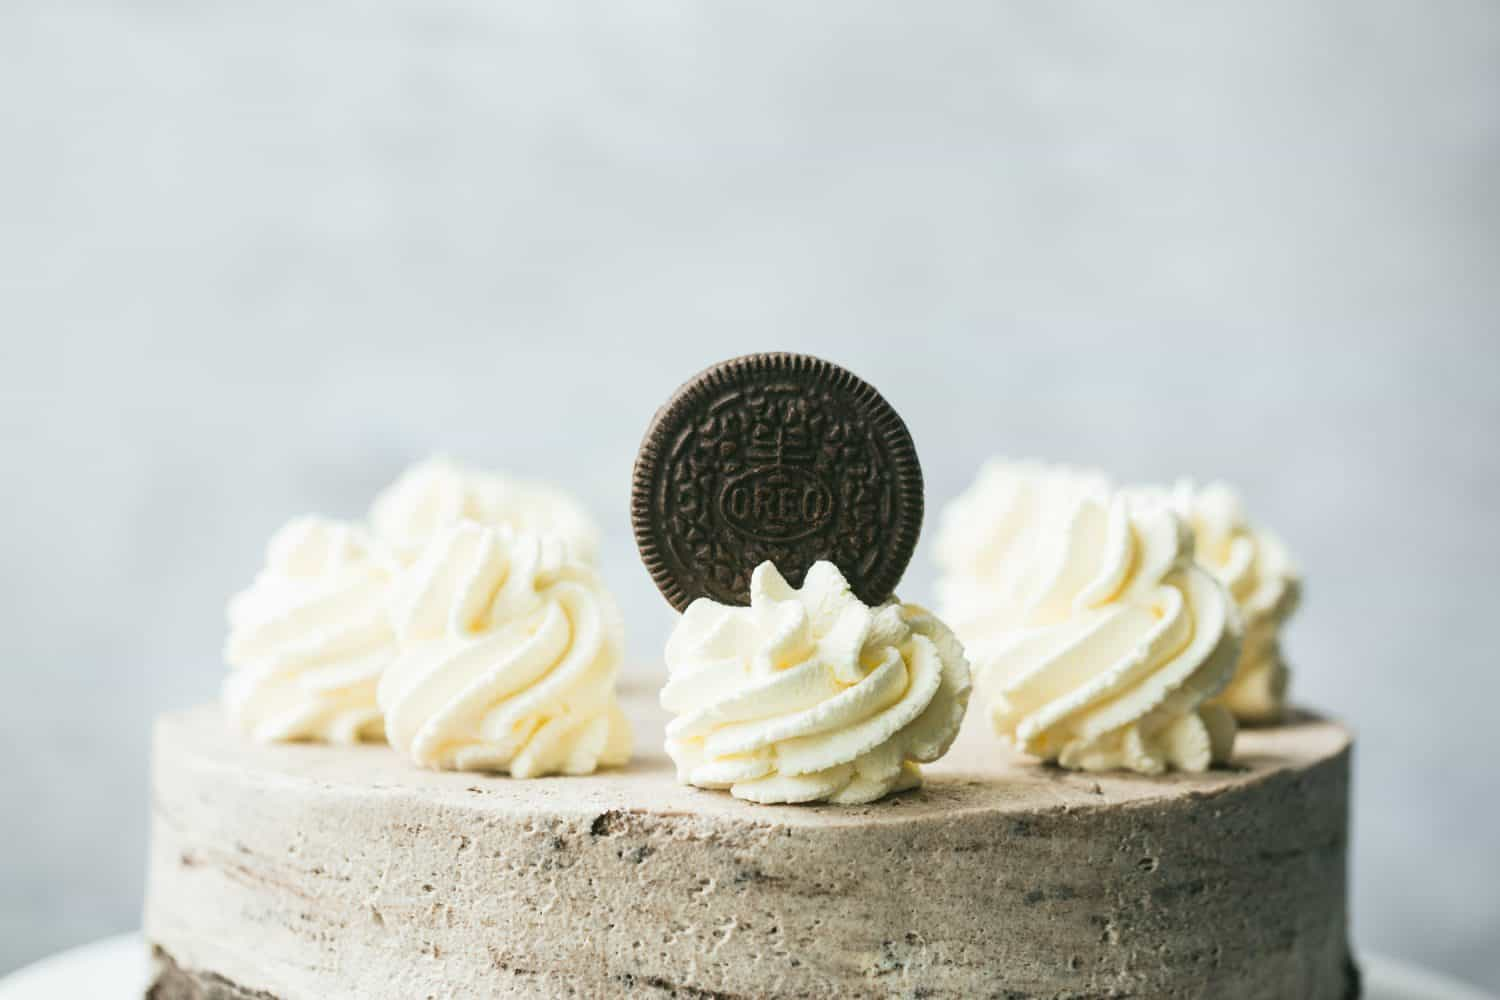 Side view of a cheesecake with swirls of homemade whipped cream on top and one Oreo cookie.